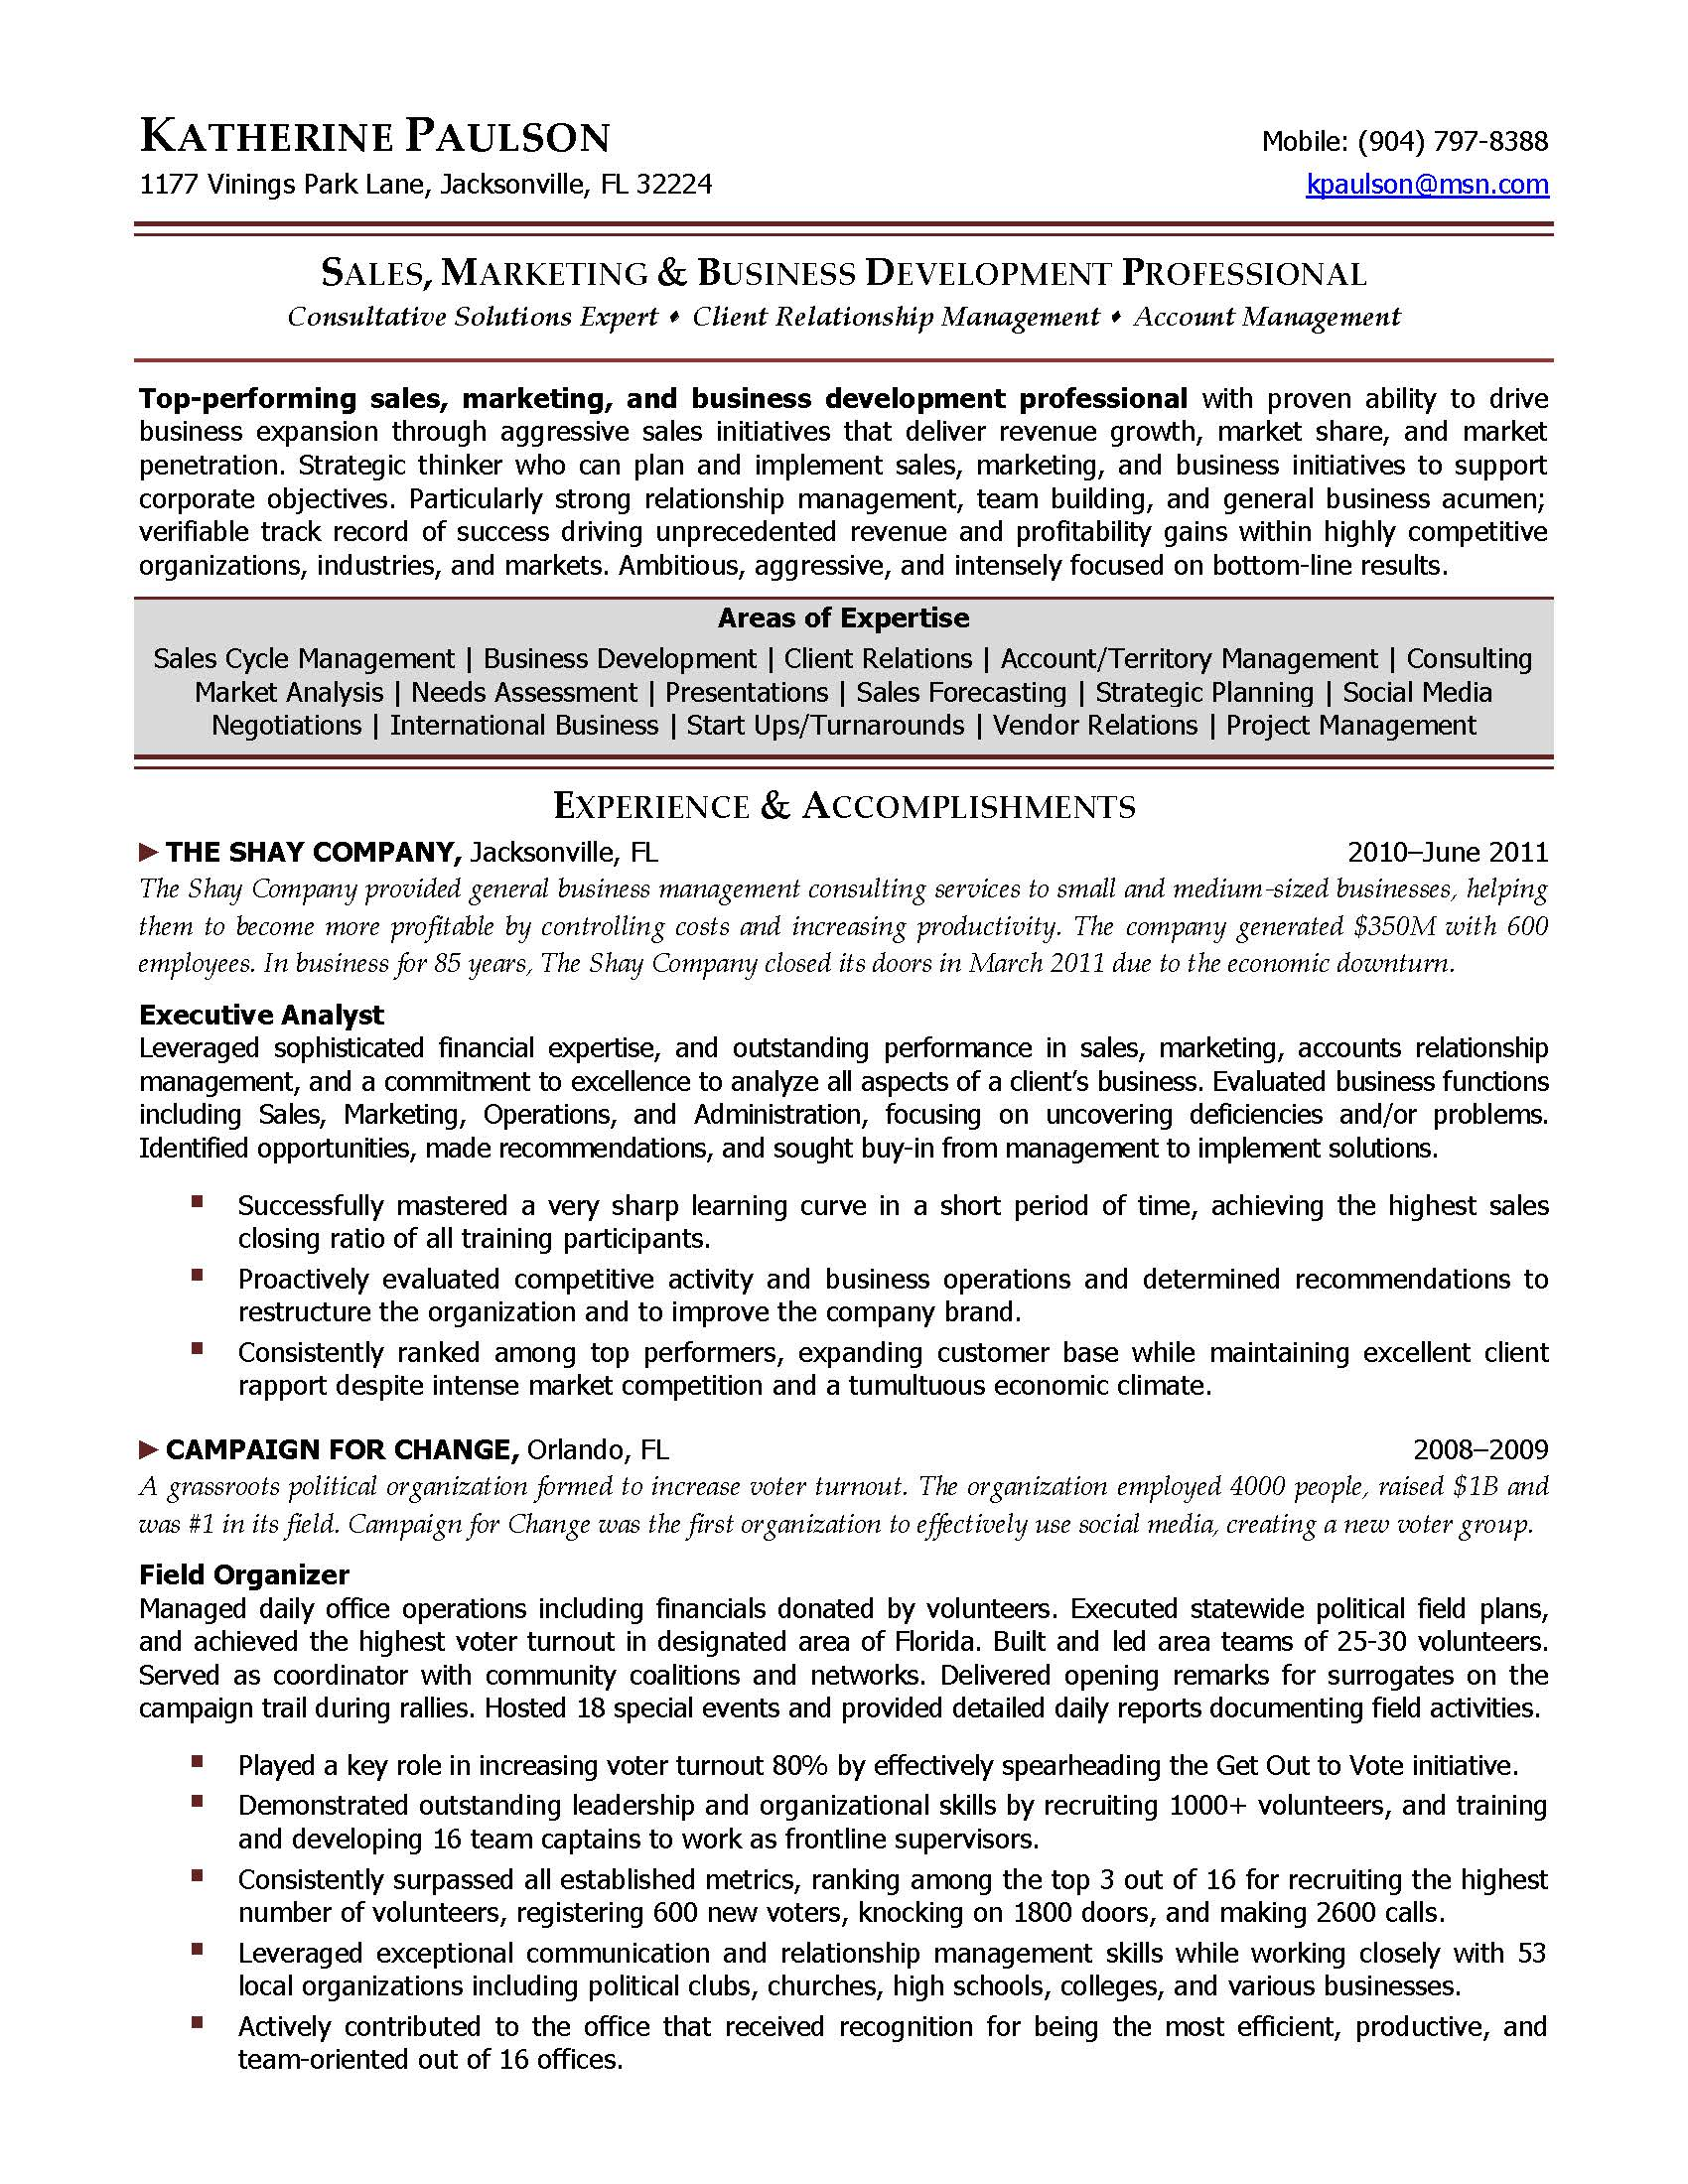 Business Development Director Resume Sample, Provided By Elite Resume  Writing Services  Business Management Resume